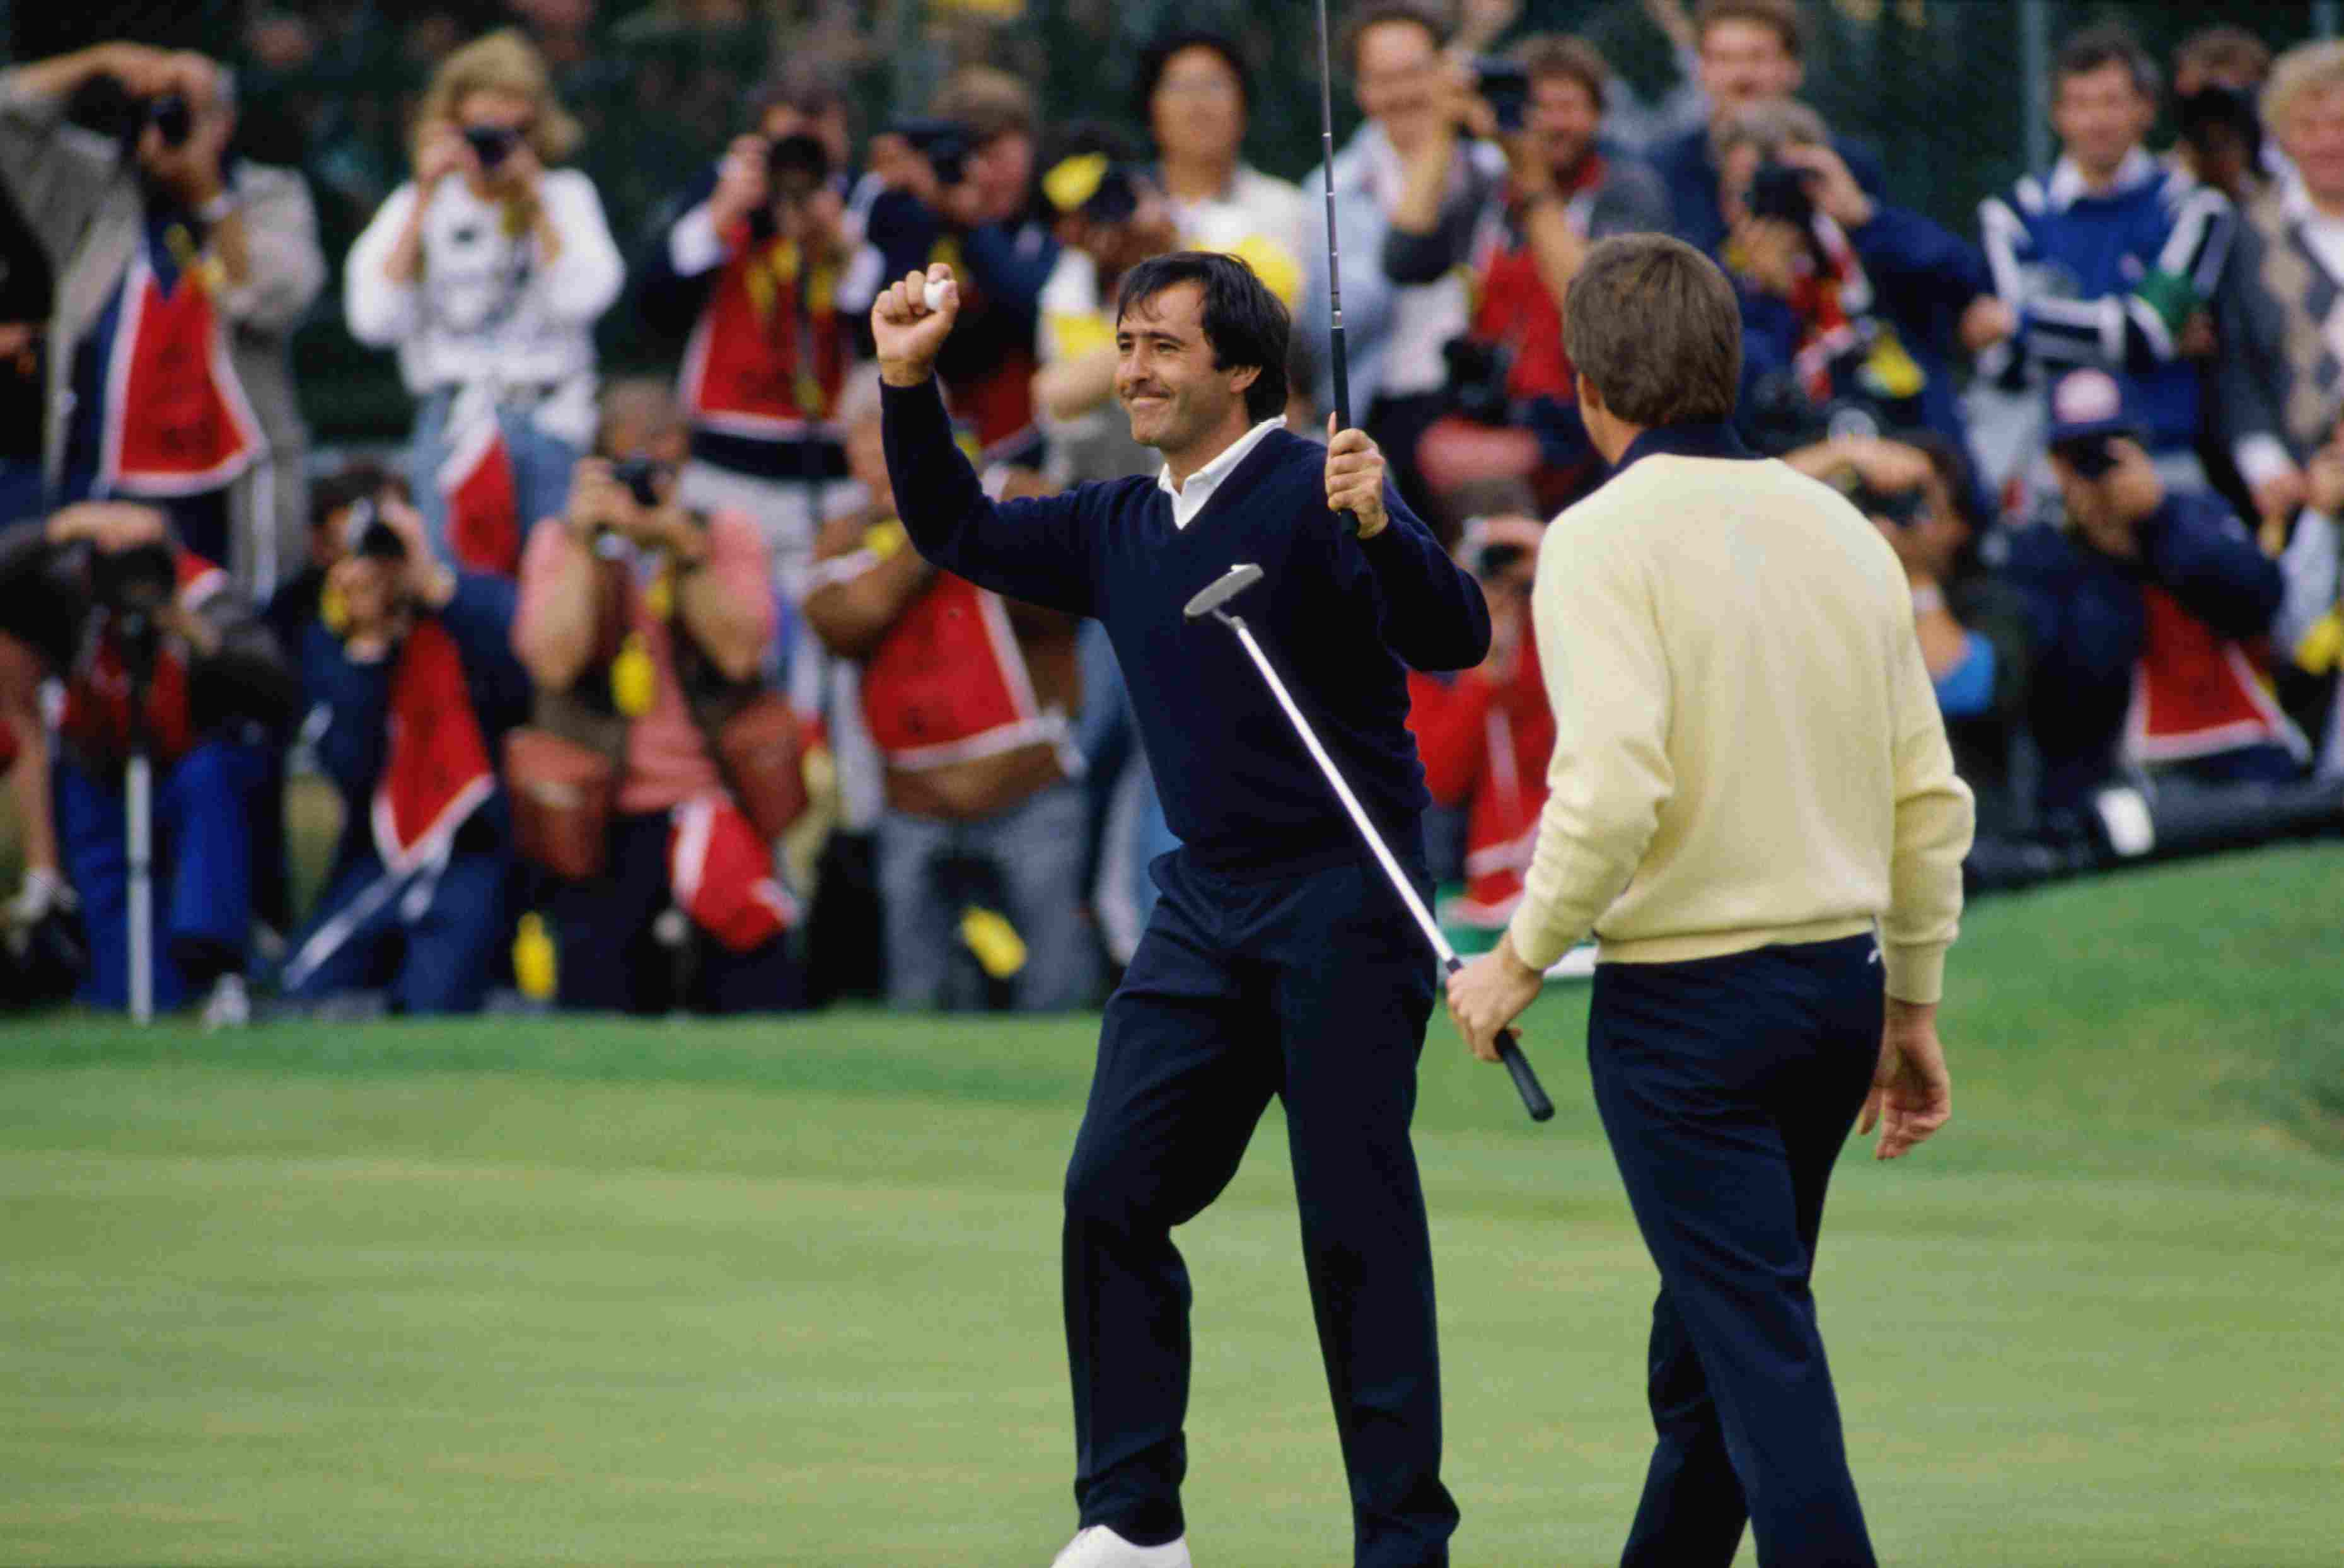 Nick Price of Zimbabwe looks on as Spanish golfer Severiano Ballesteros (left) celebrates his final putt on the 18th green during the Open Championship at the Royal Lytham and St Annes Golf Club, July 1988